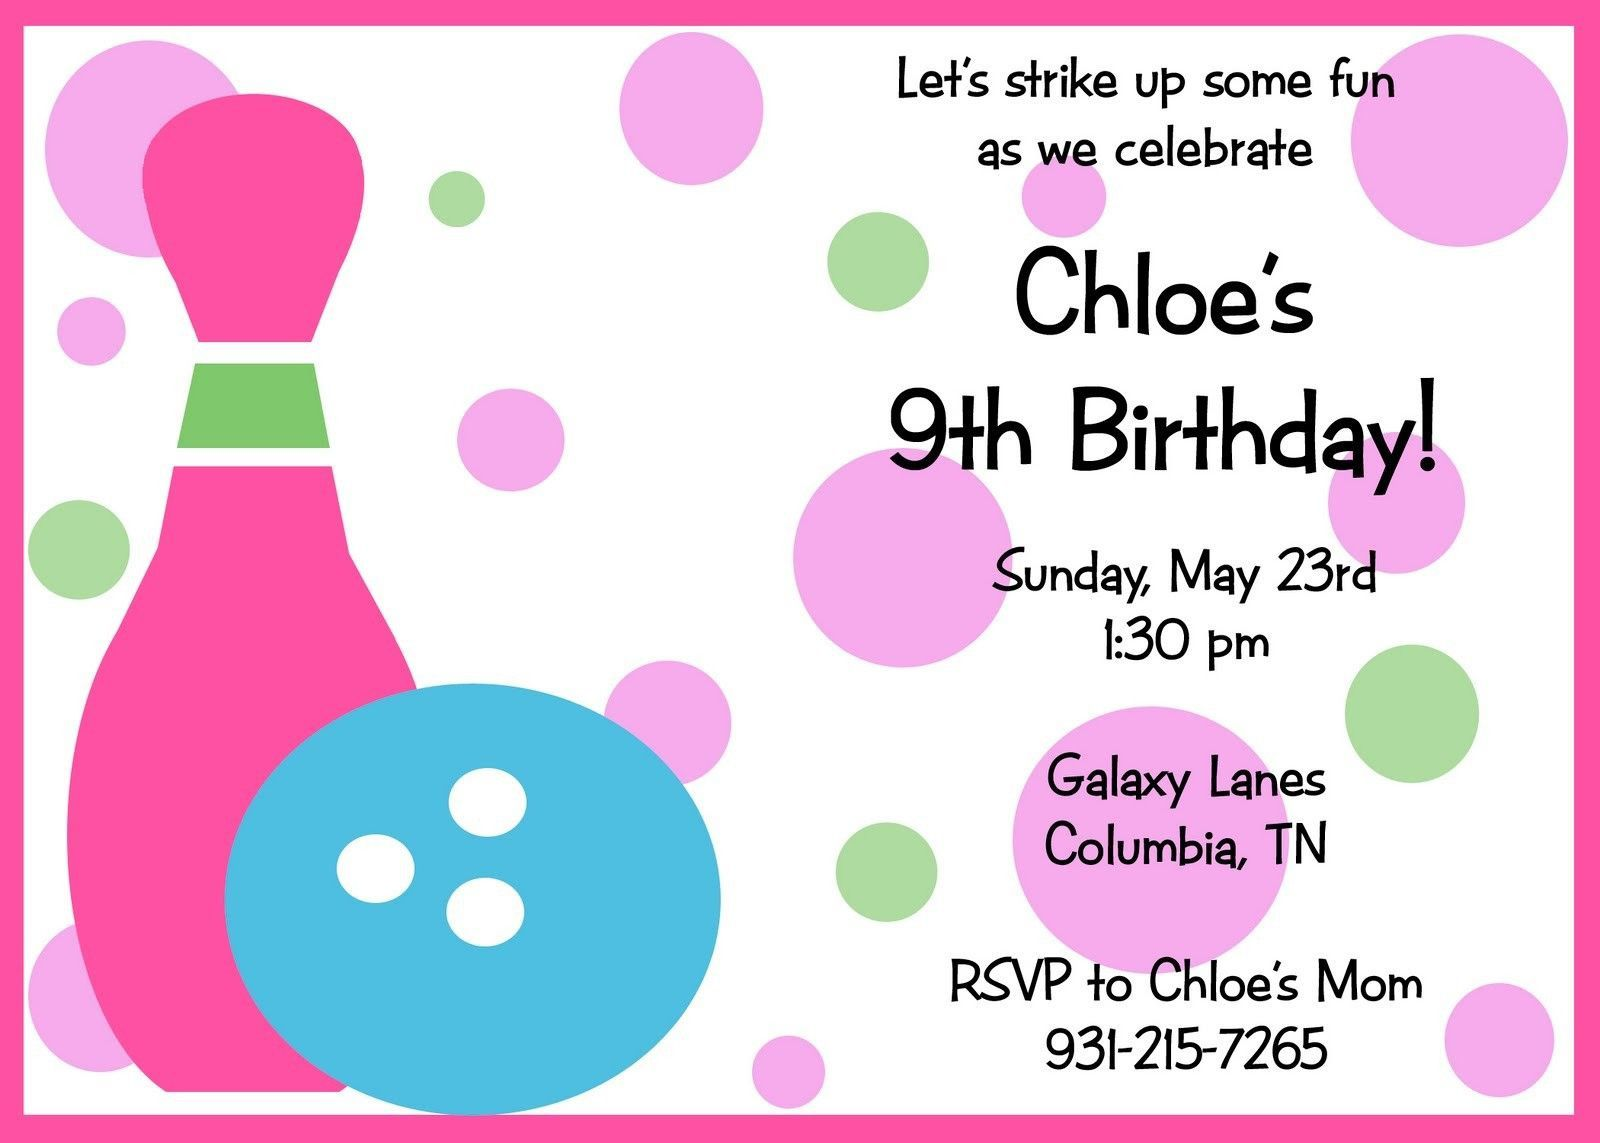 007 Unbelievable Bowling Party Invite Printable Free Inspiration  Birthday InvitationFull